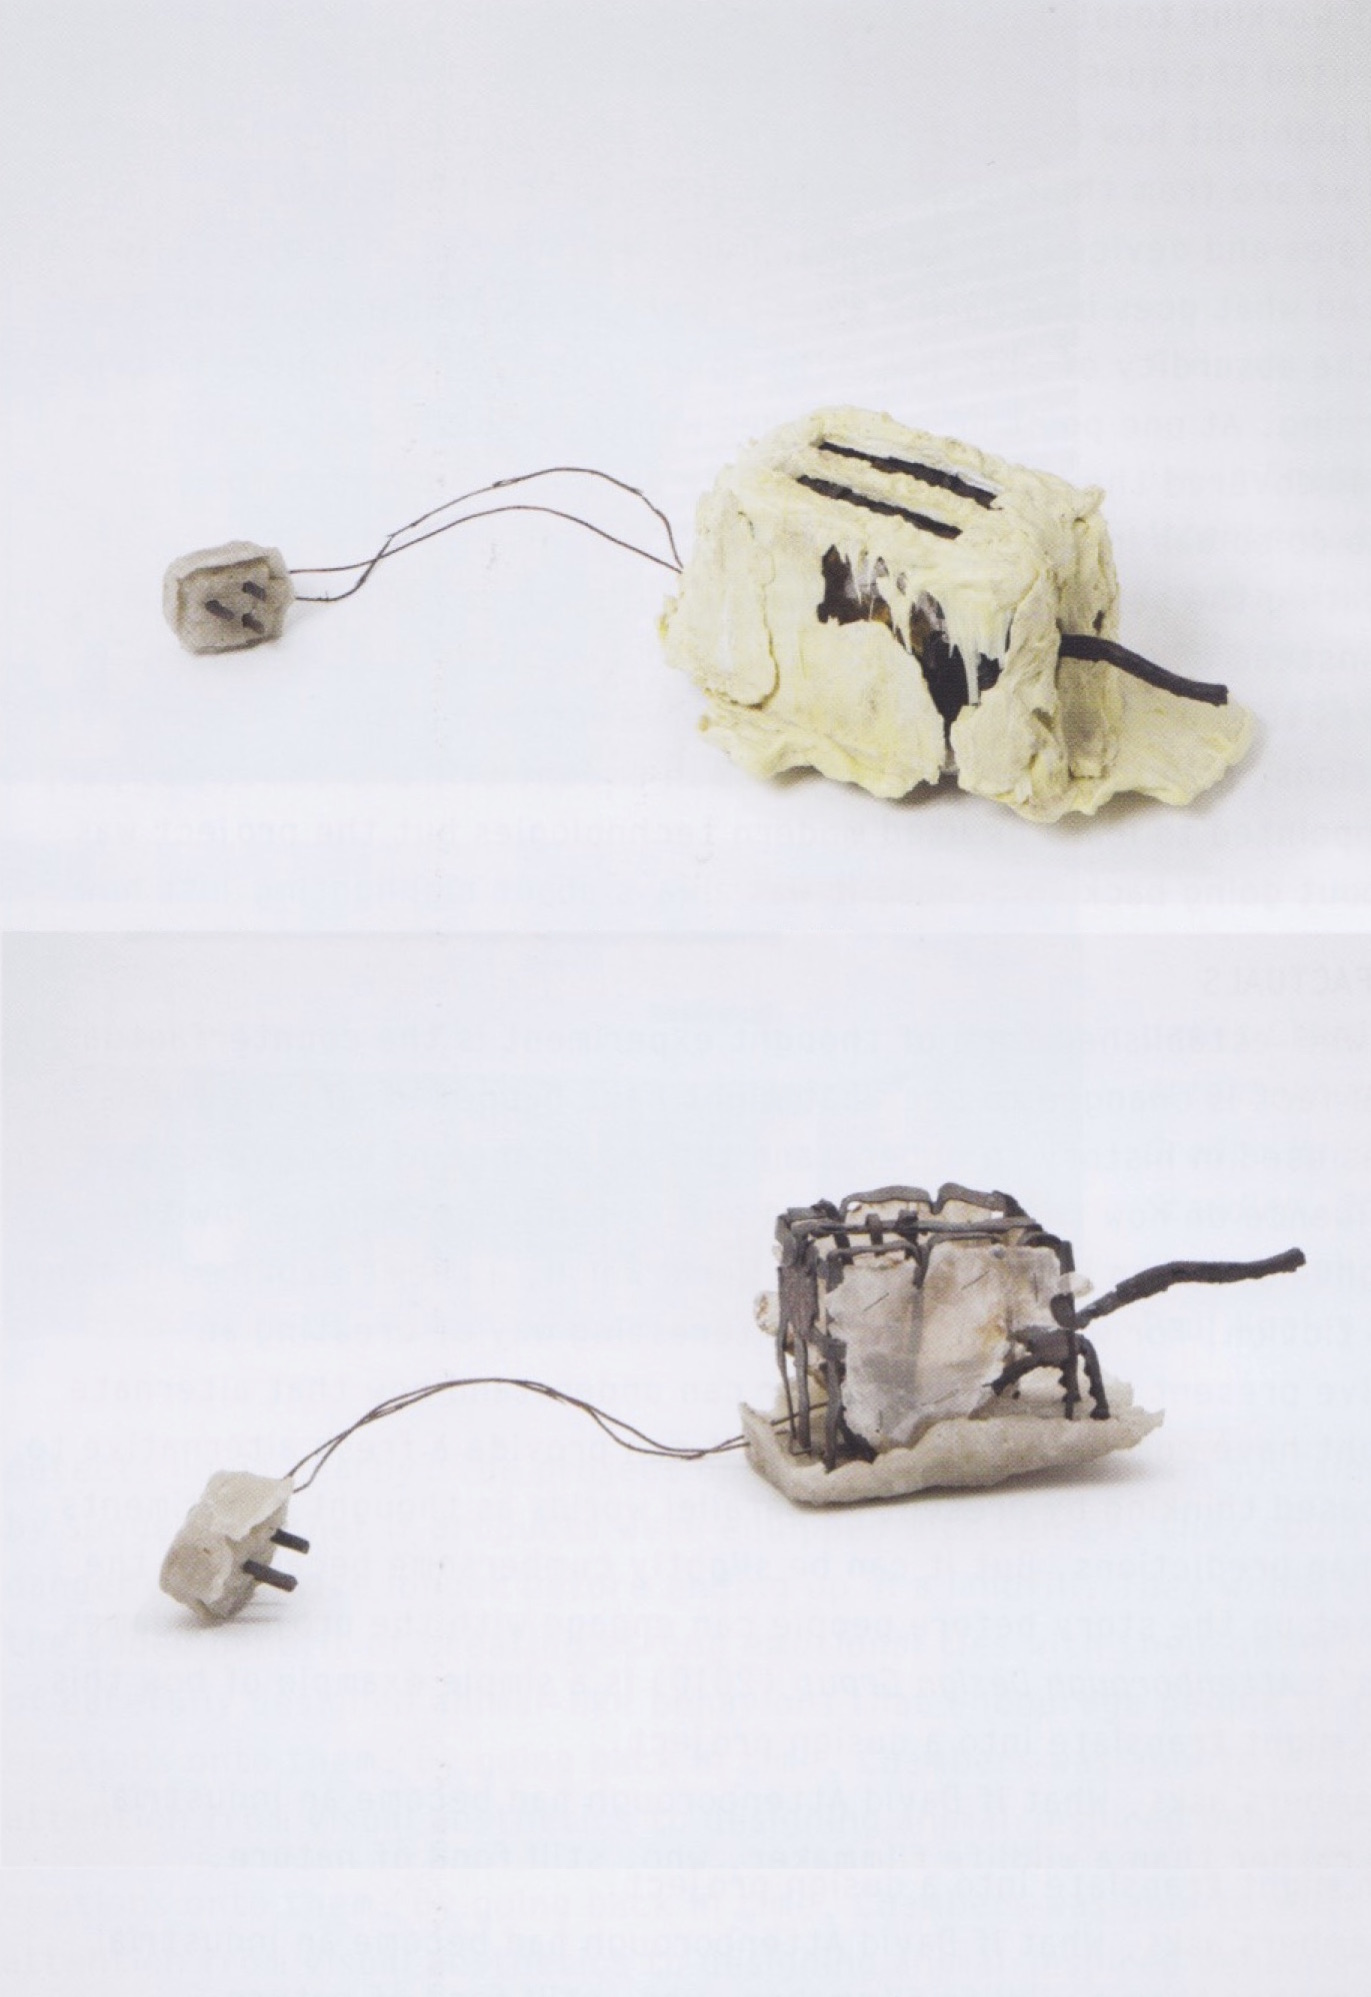 Thomas Thwaites,   The Toaster Project  , 2009, P.C. Daniel Alexander.